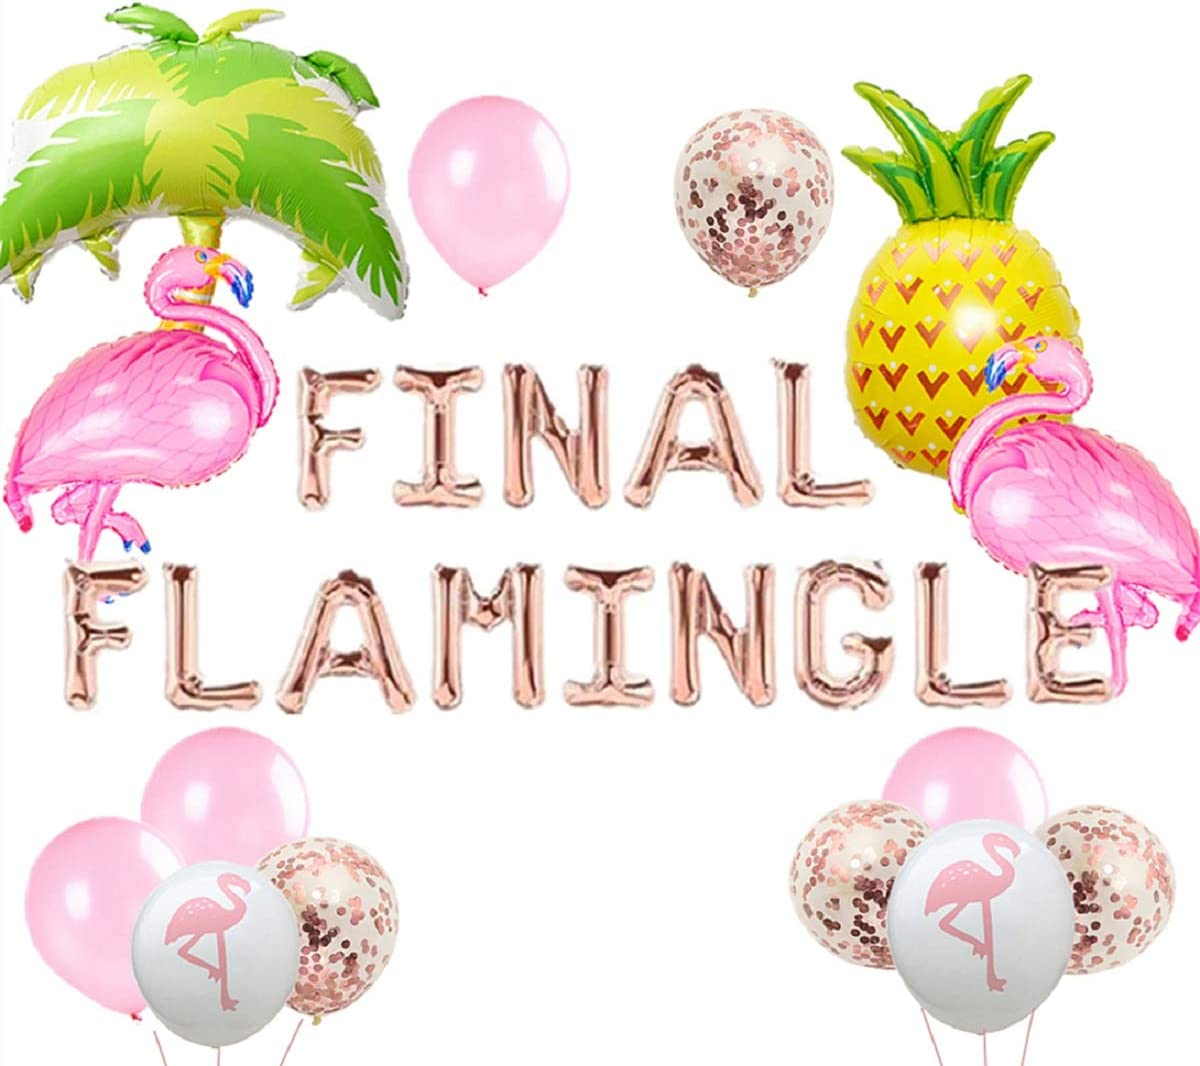 JeVenis Set of 20 Rose Gold Final Flamingle Balloons Flamingo Bach Balloons Flamingo Bachelorette Party Decor Flamingo Bach Balloon Banner Flamingle Bach Decorations